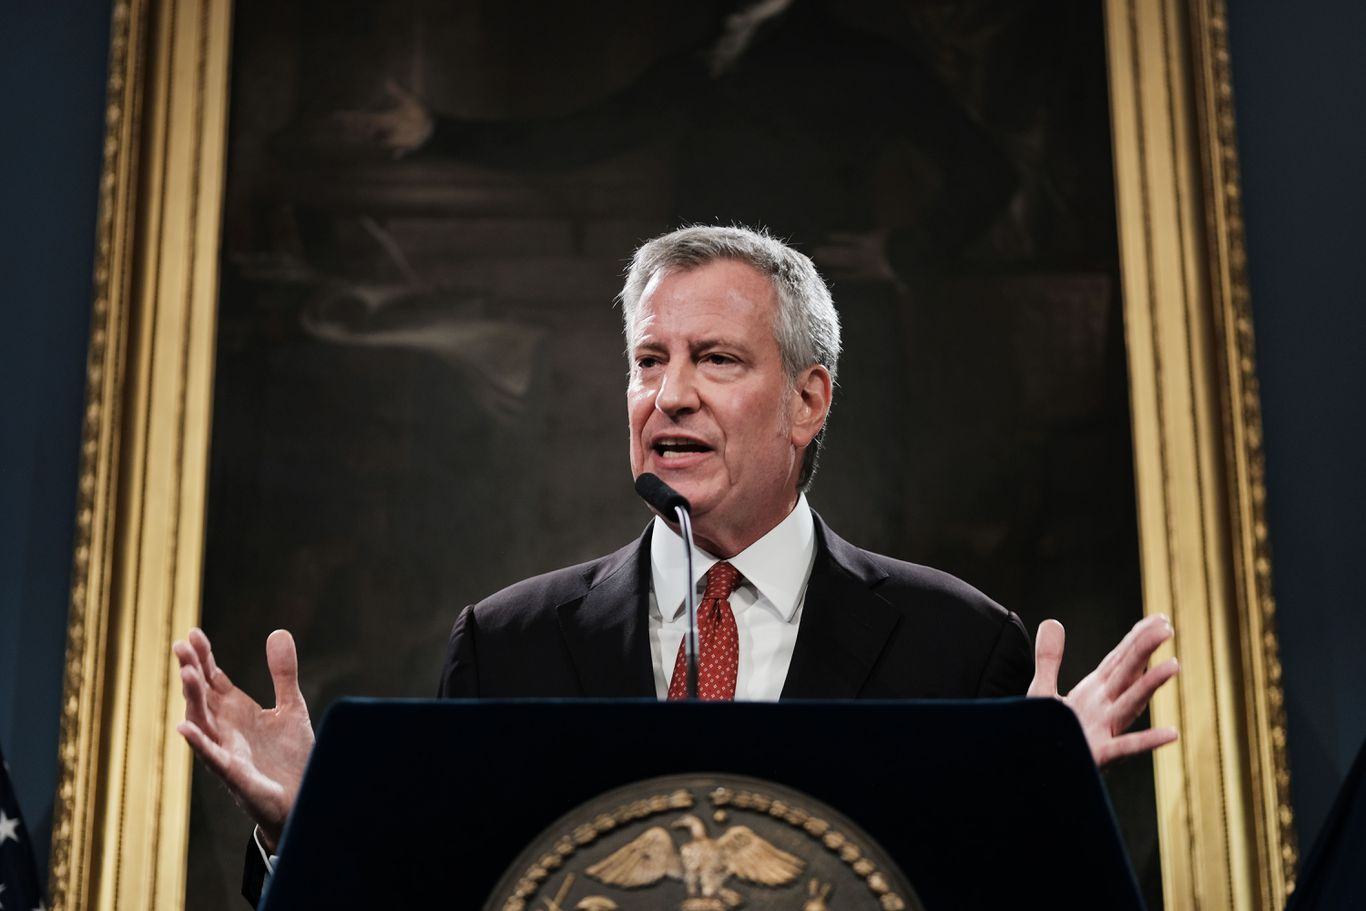 New York City schools will not fully reopen in fall